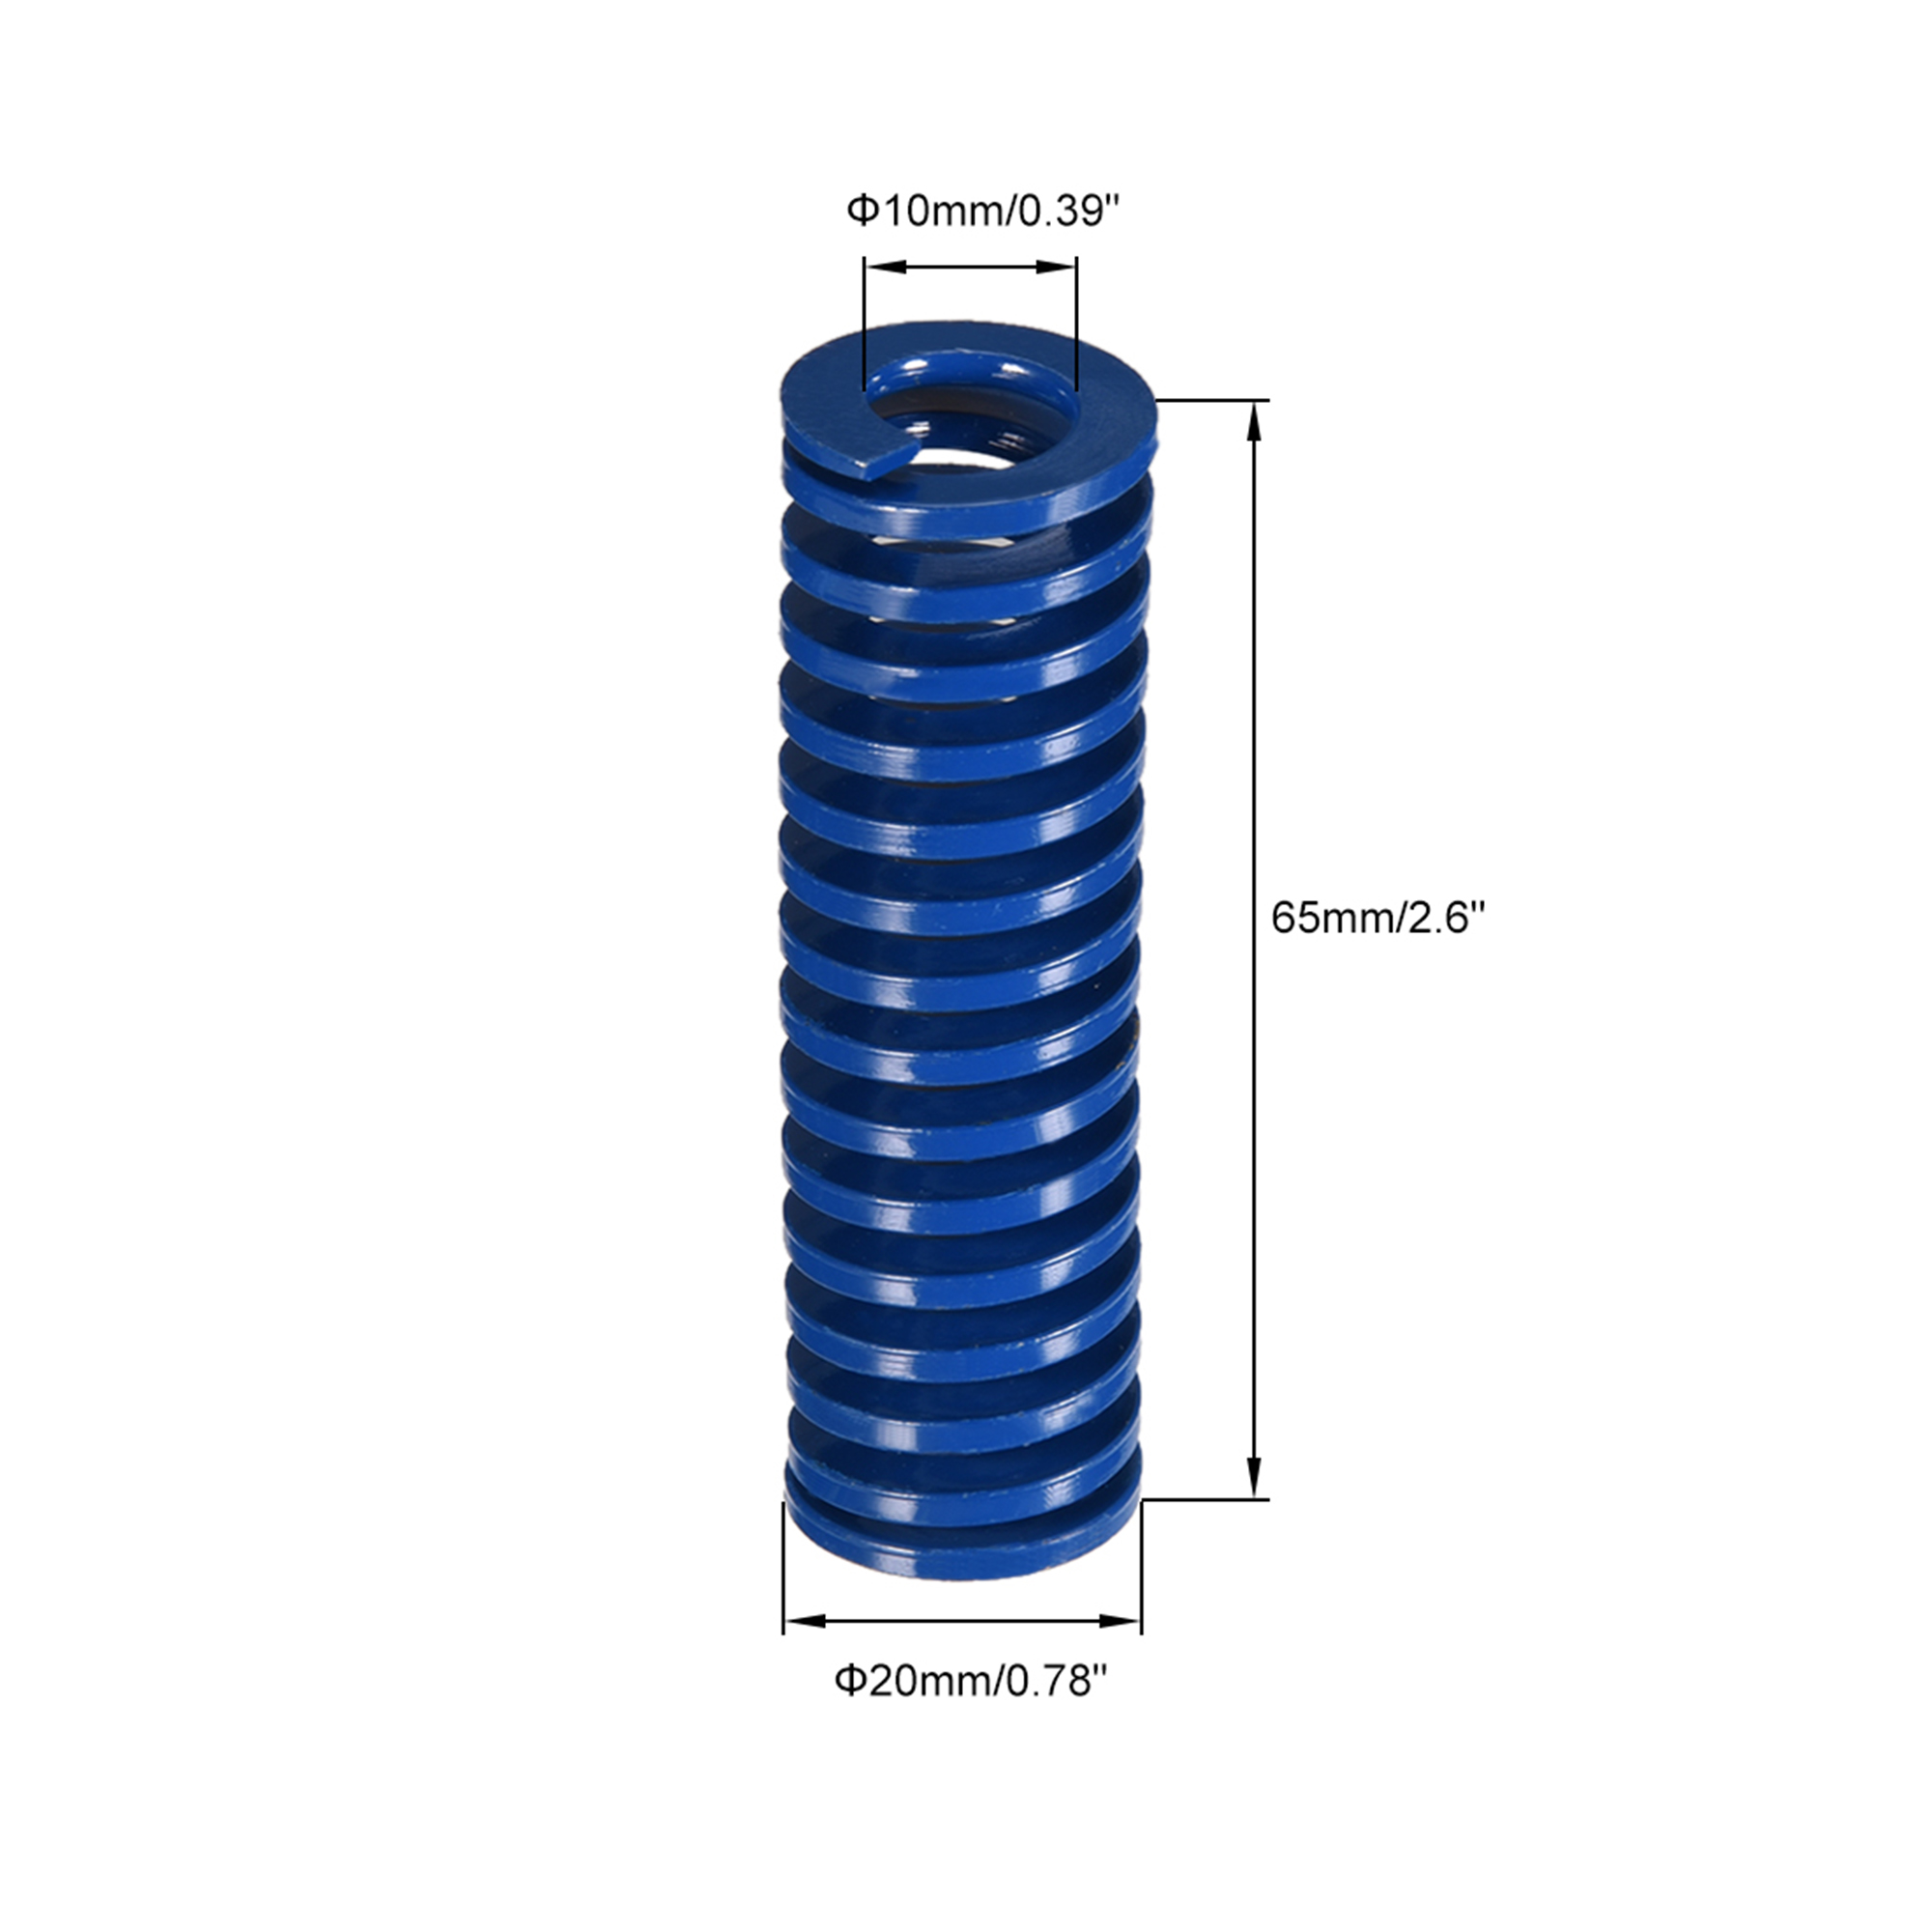 20mm OD 65mm Long Spiral Stamping Light Load Compression Mould Die Spring Blue 1Pcs - image 1 of 2